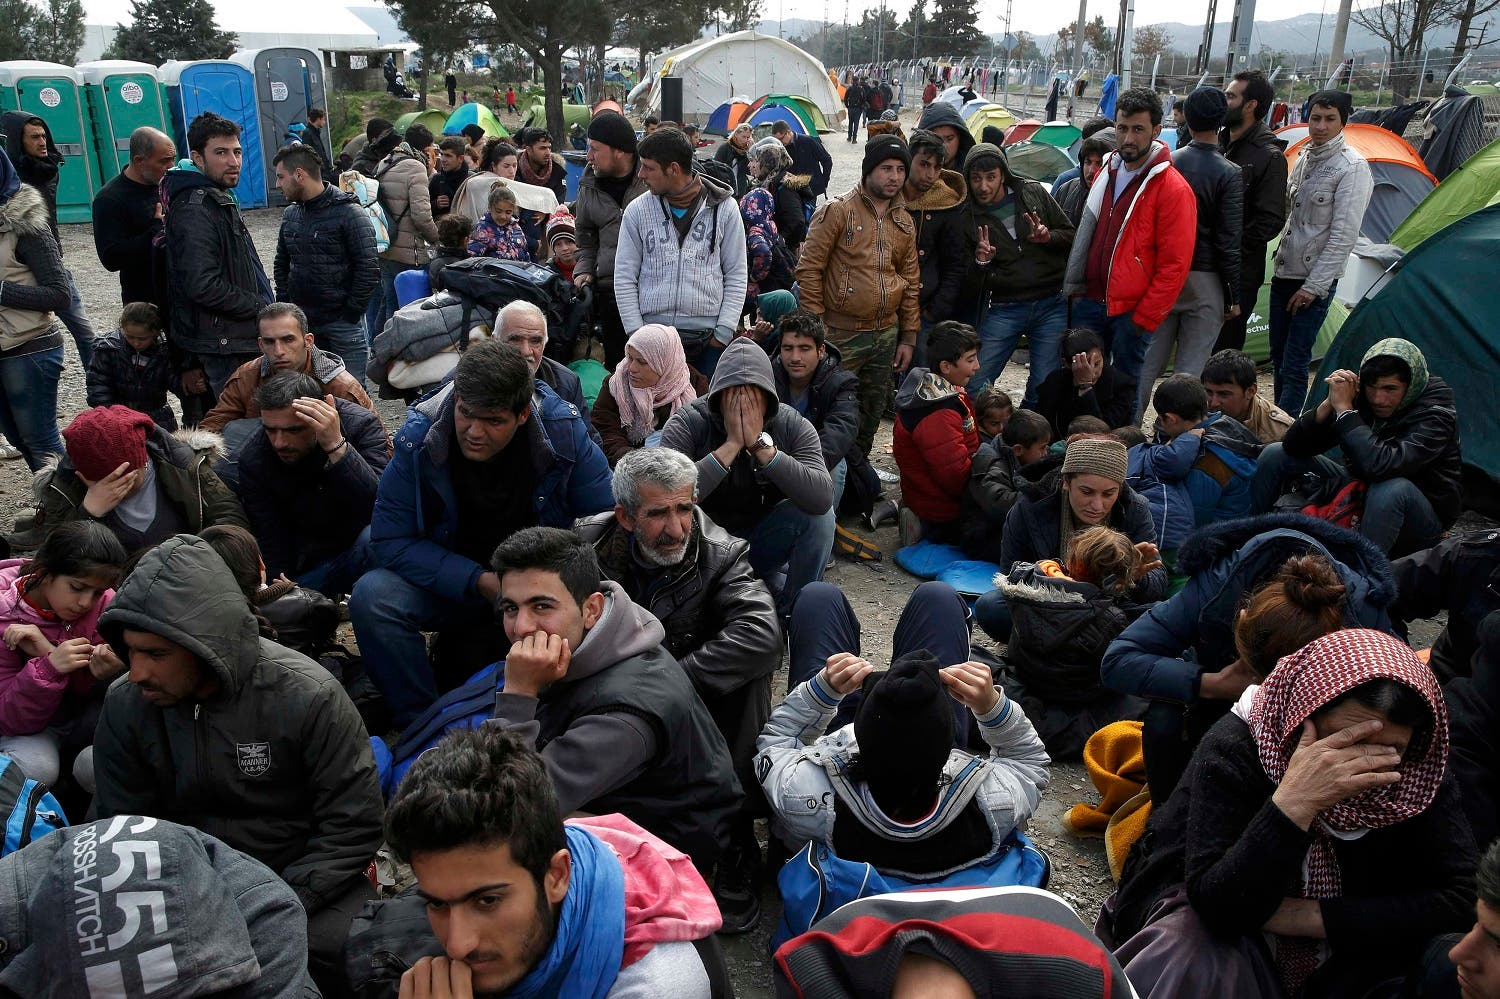 Migrants queue to receive travel papers near the Greek-Macedonian border, near the village of Idomeni, Greece March 2, 2016. REUTERS